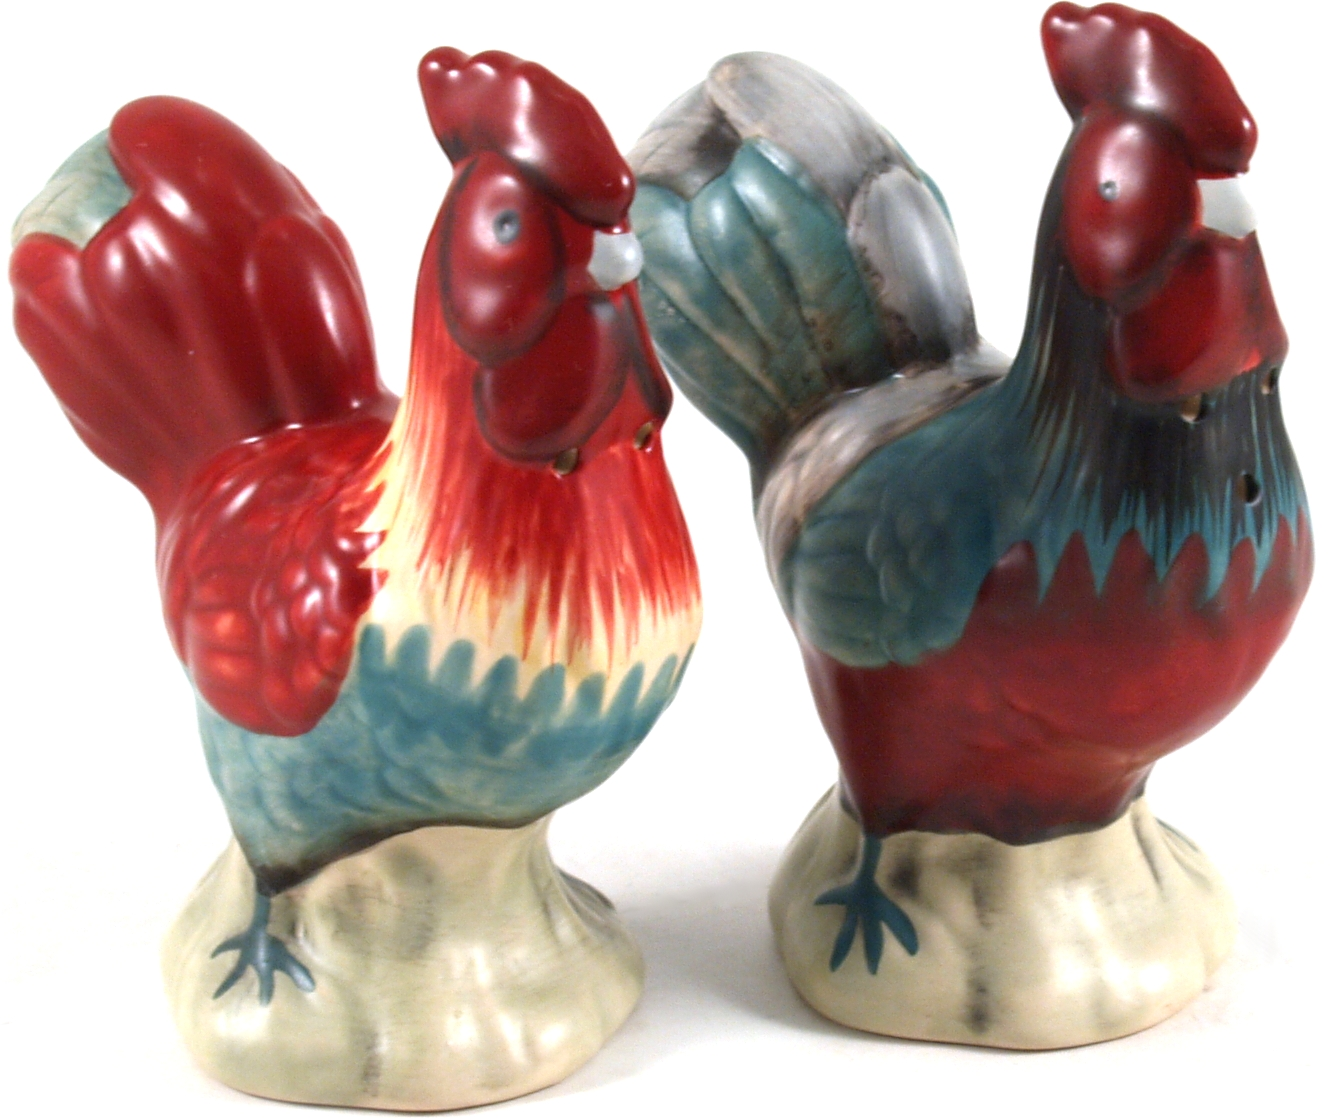 Ceramic Red Roosters Salt and Pepper Shaker Set, 2 Piece